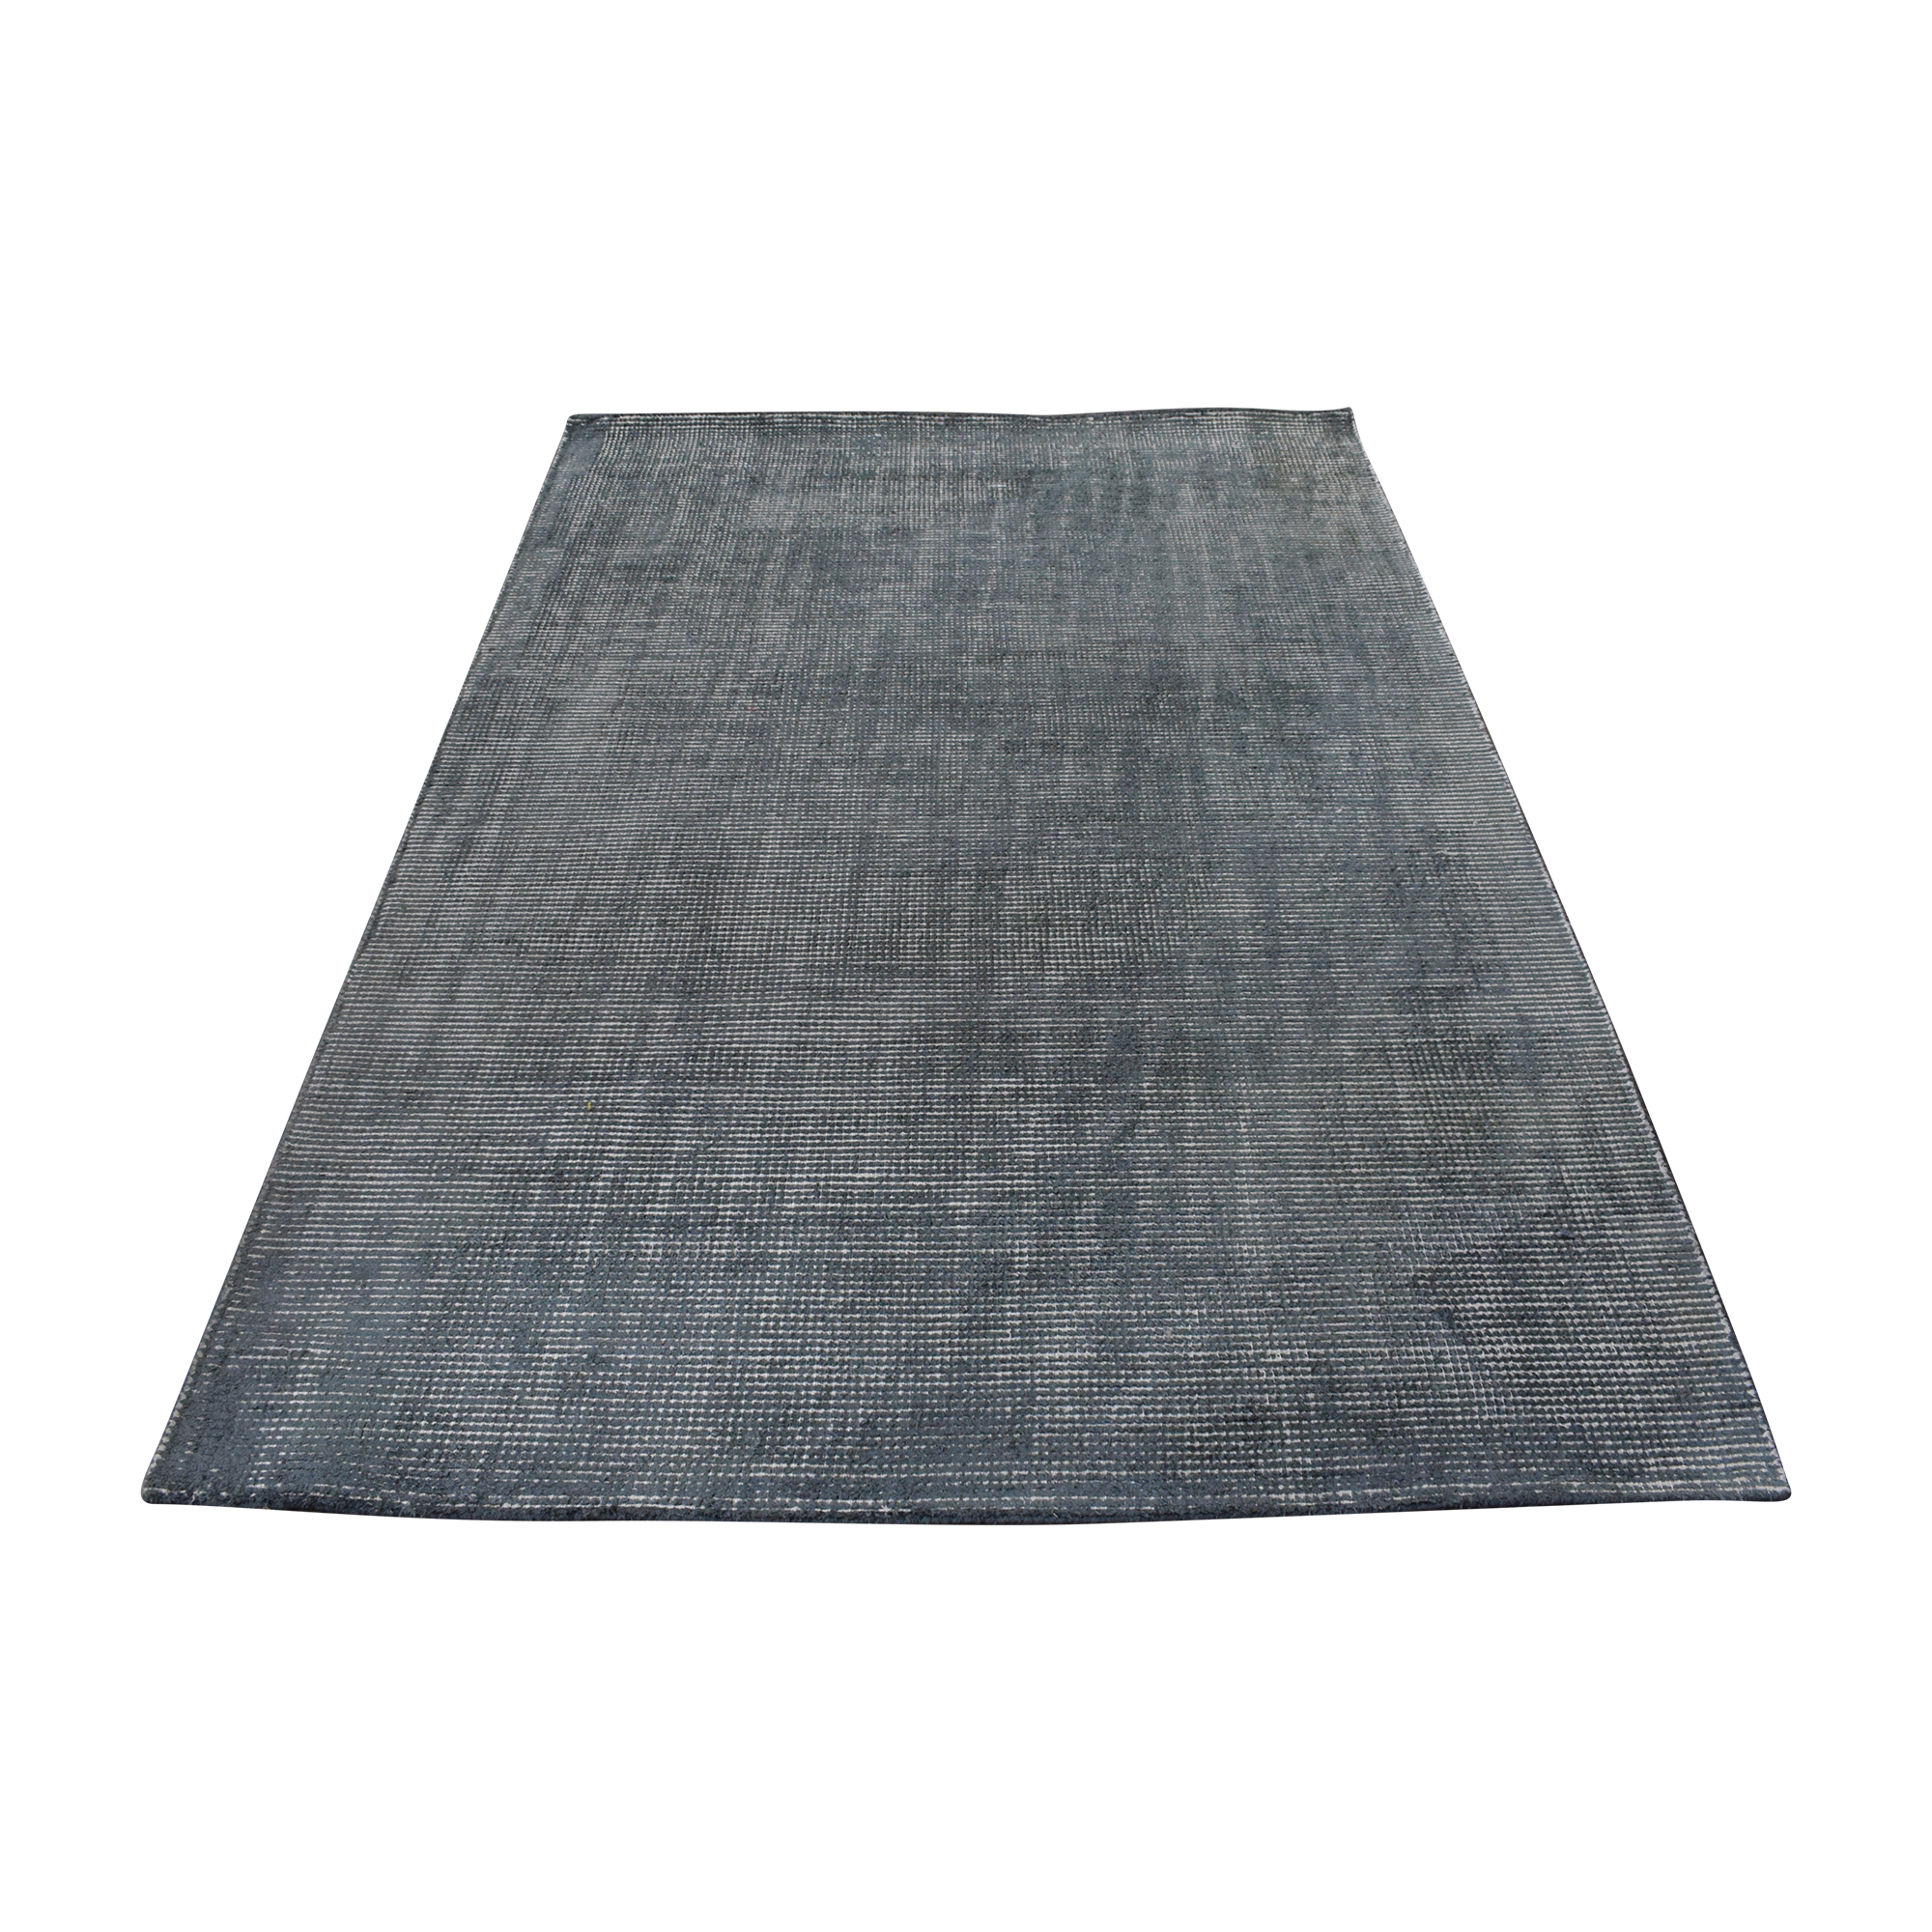 CB2 CB2 Scatter Gray Rug nj